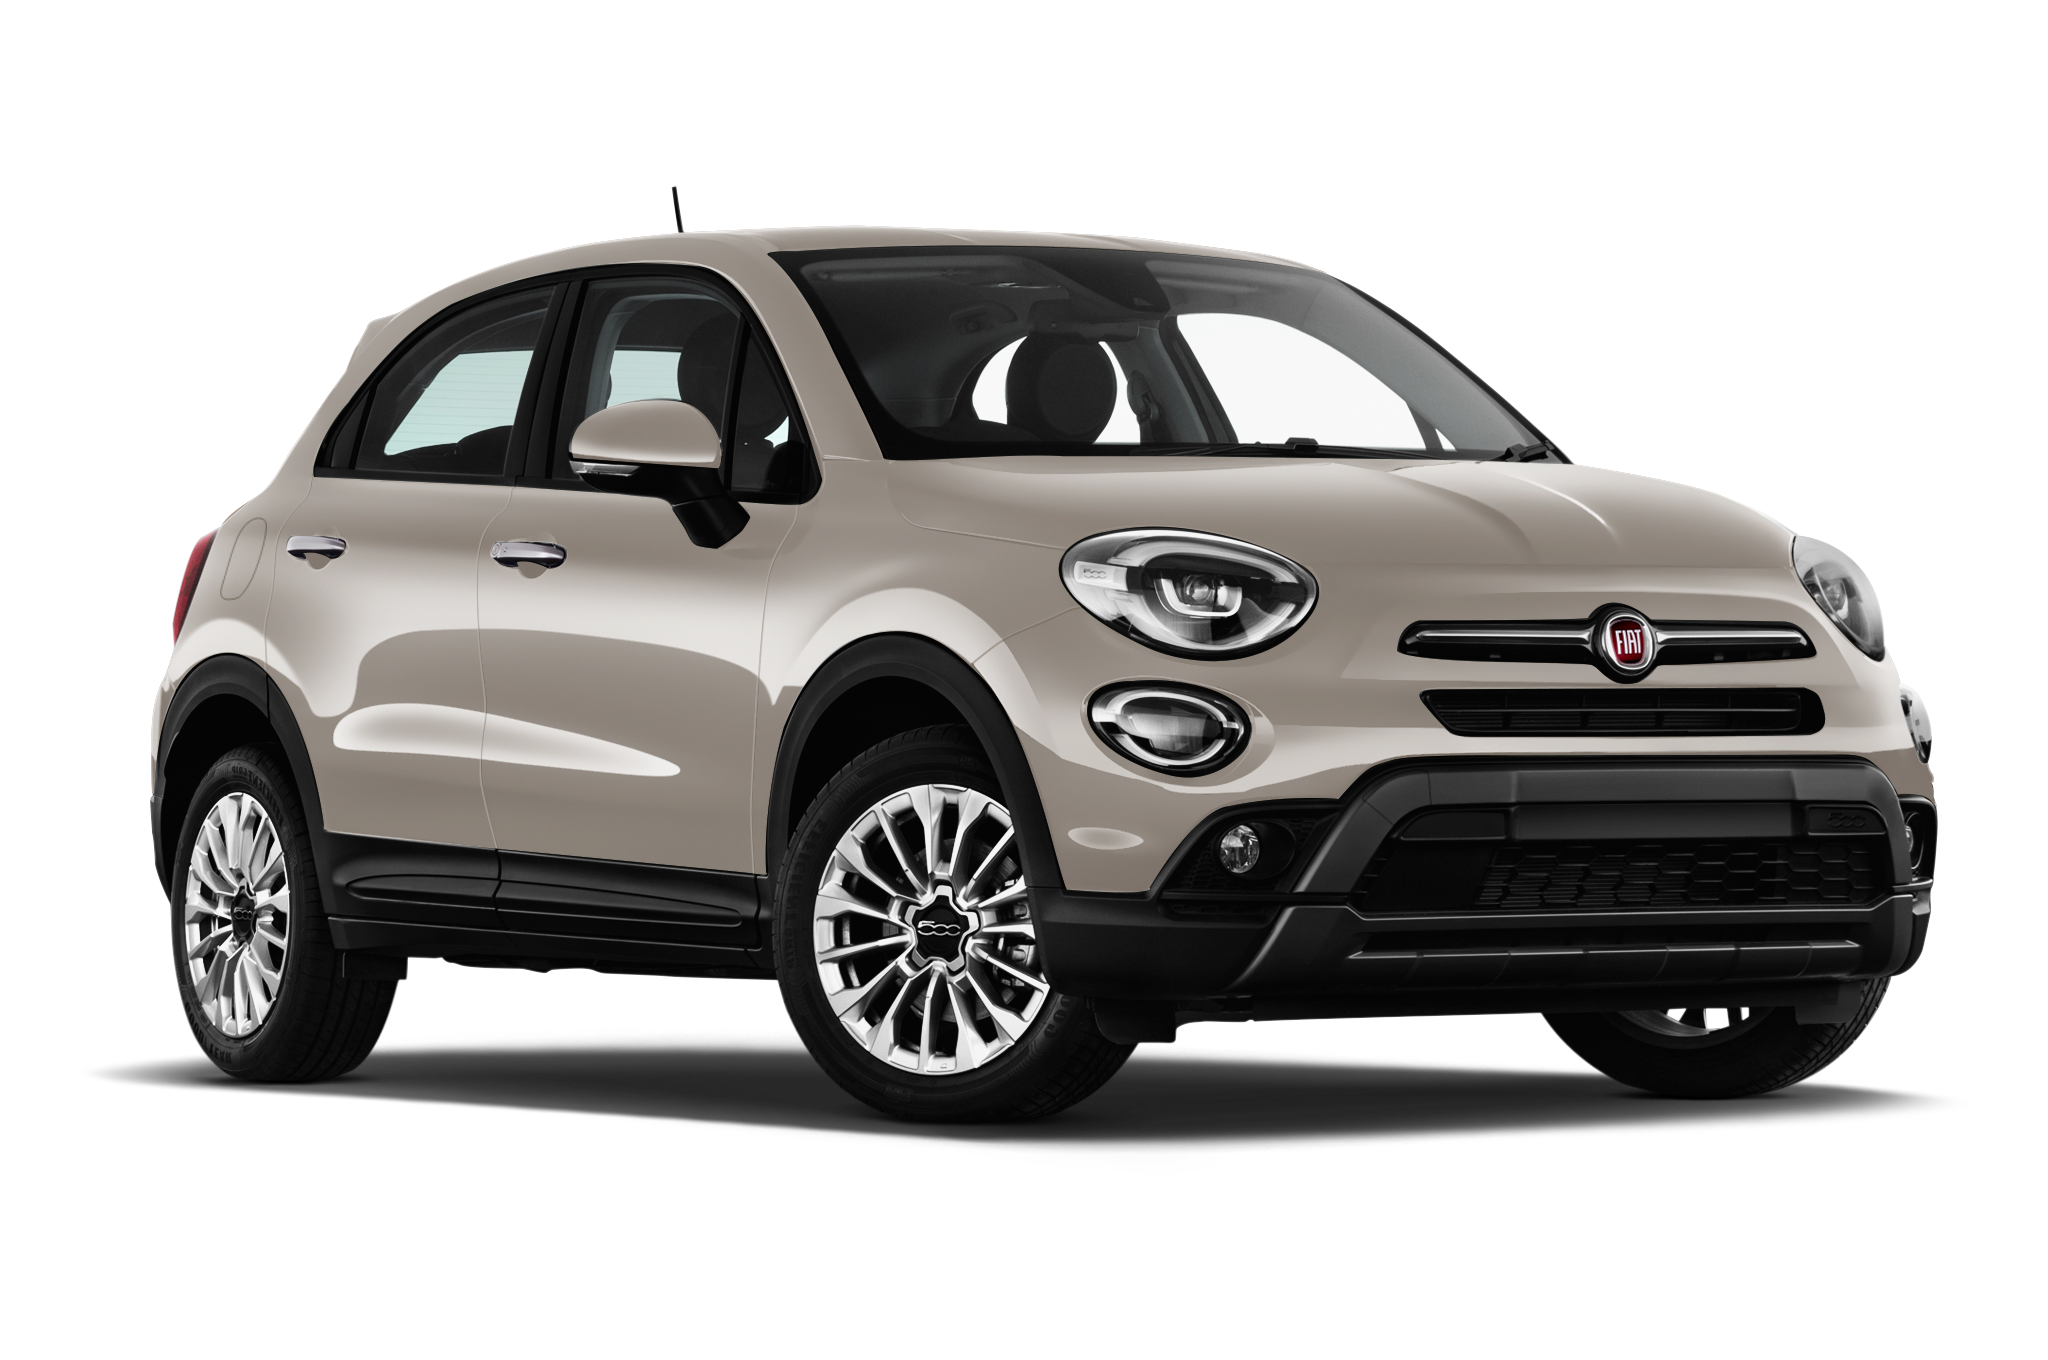 New Fiat 500x Deals Offers Save Up To 6 016 Carwow